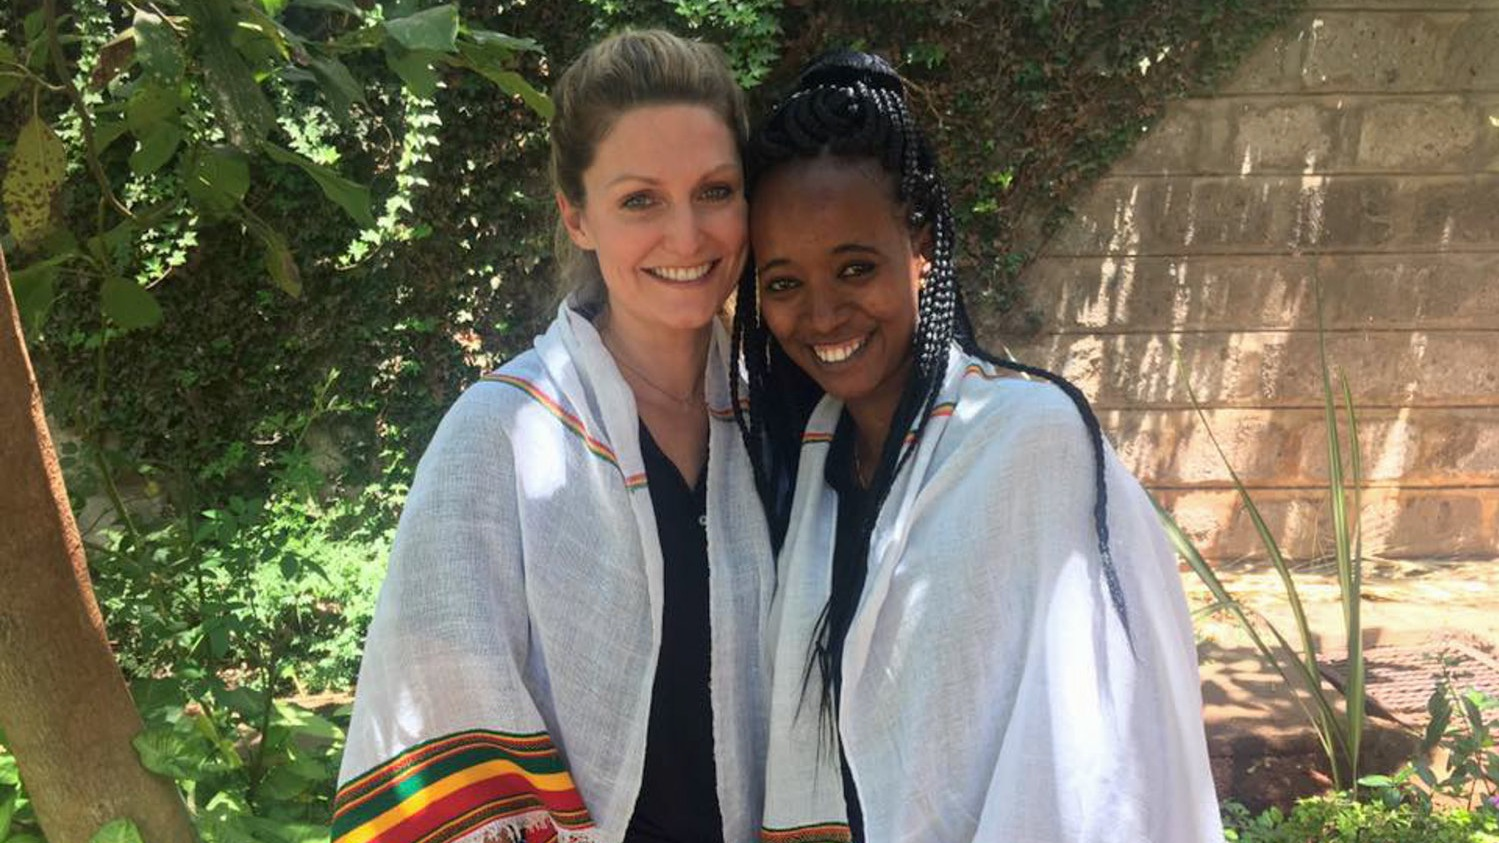 - Jeni Lowry, Founder of GLOW Foundation (Giving Life Opportunities to Women), first met the girls' school, Daraja Academy, in Kenya September 2015. After her visit, she grew to understand what was happening to many of them upon high school graduation. Though their scores were high enough to be admitted to college, for financial reasons, they were unable to attend. She could not sit back, do nothing and watch some of the hardest working girls she'd ever come across return to their villages to seek menial employment in a country with over 35% unemployment.